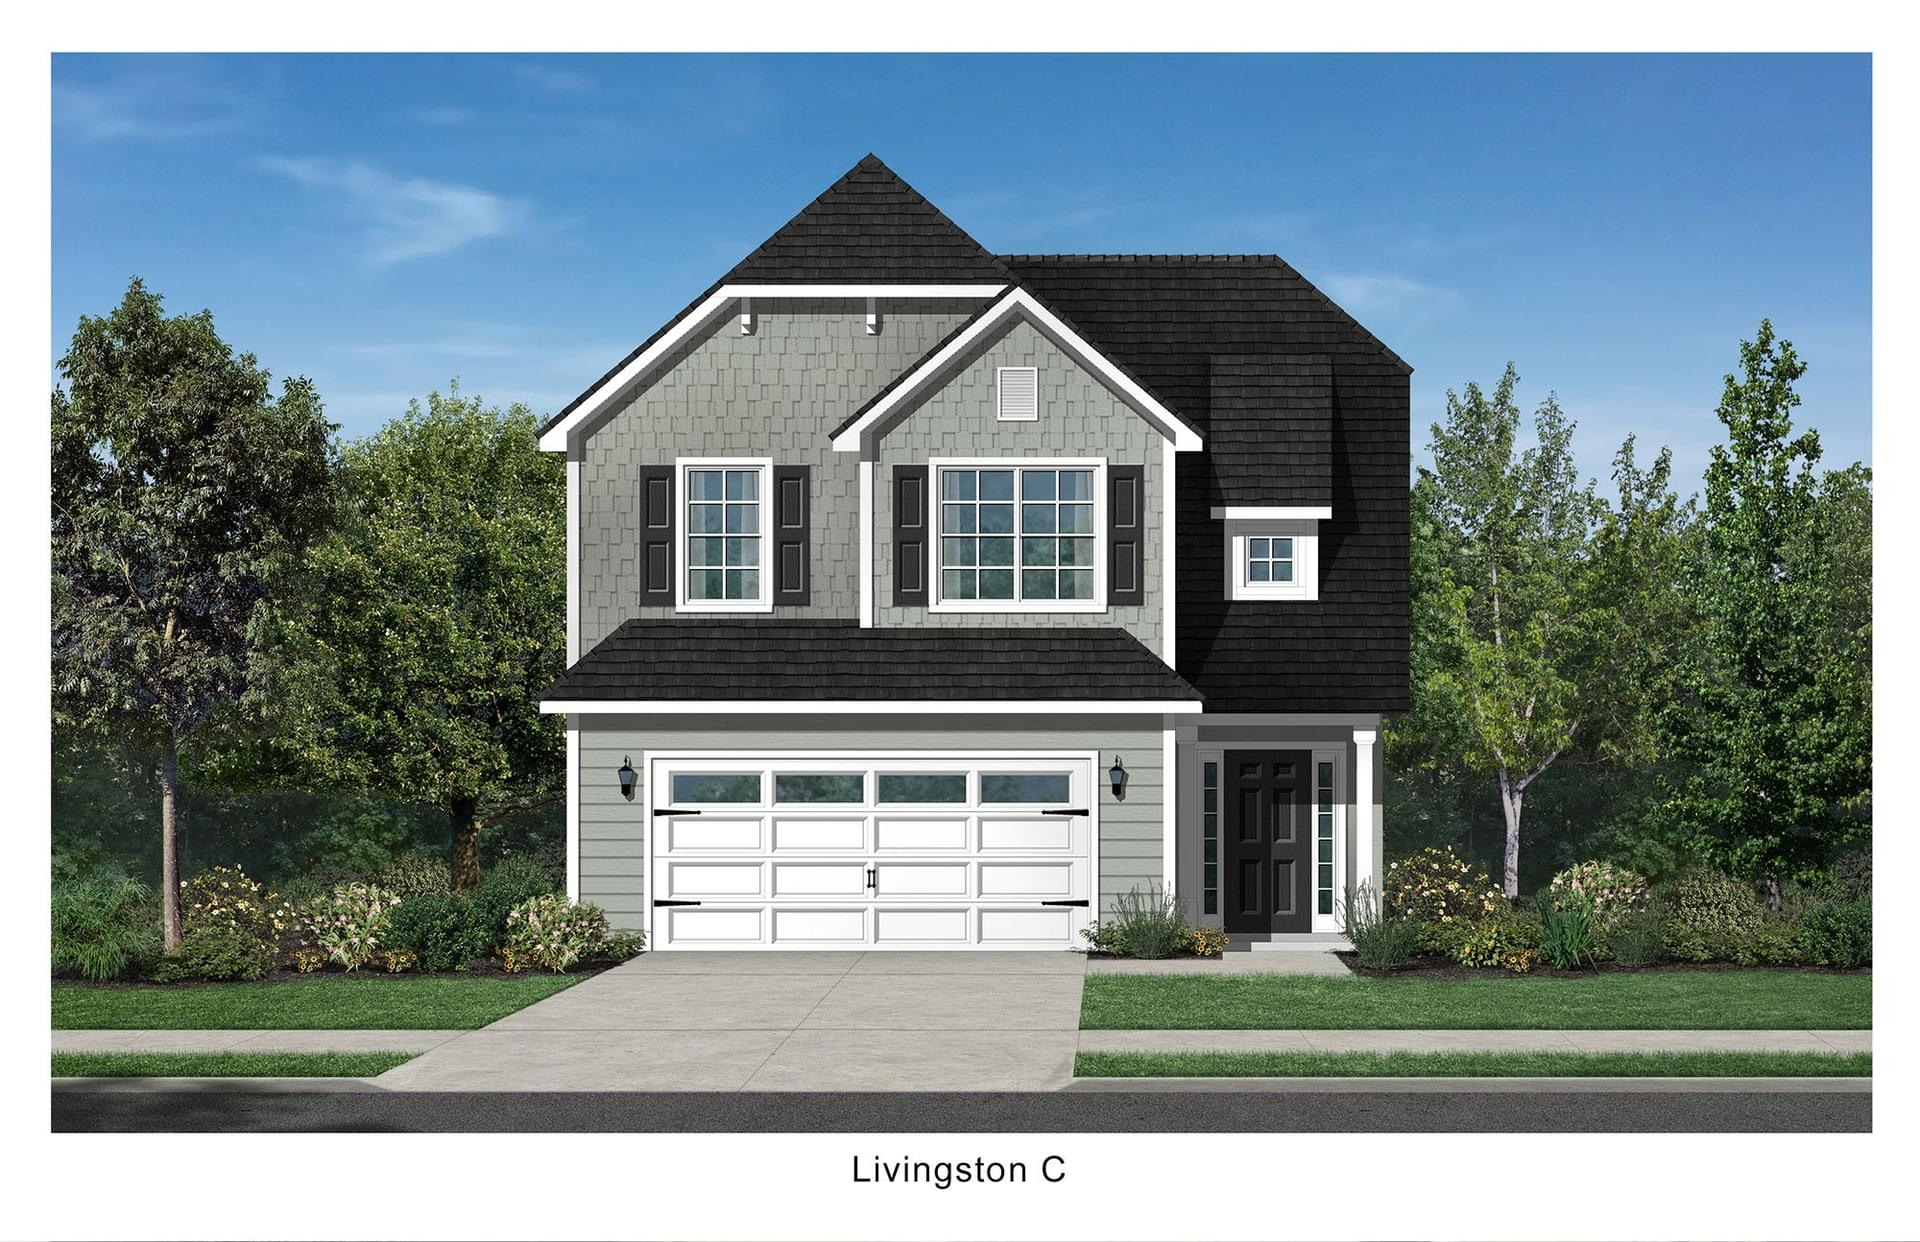 Livingston Homes : Crescent Homes